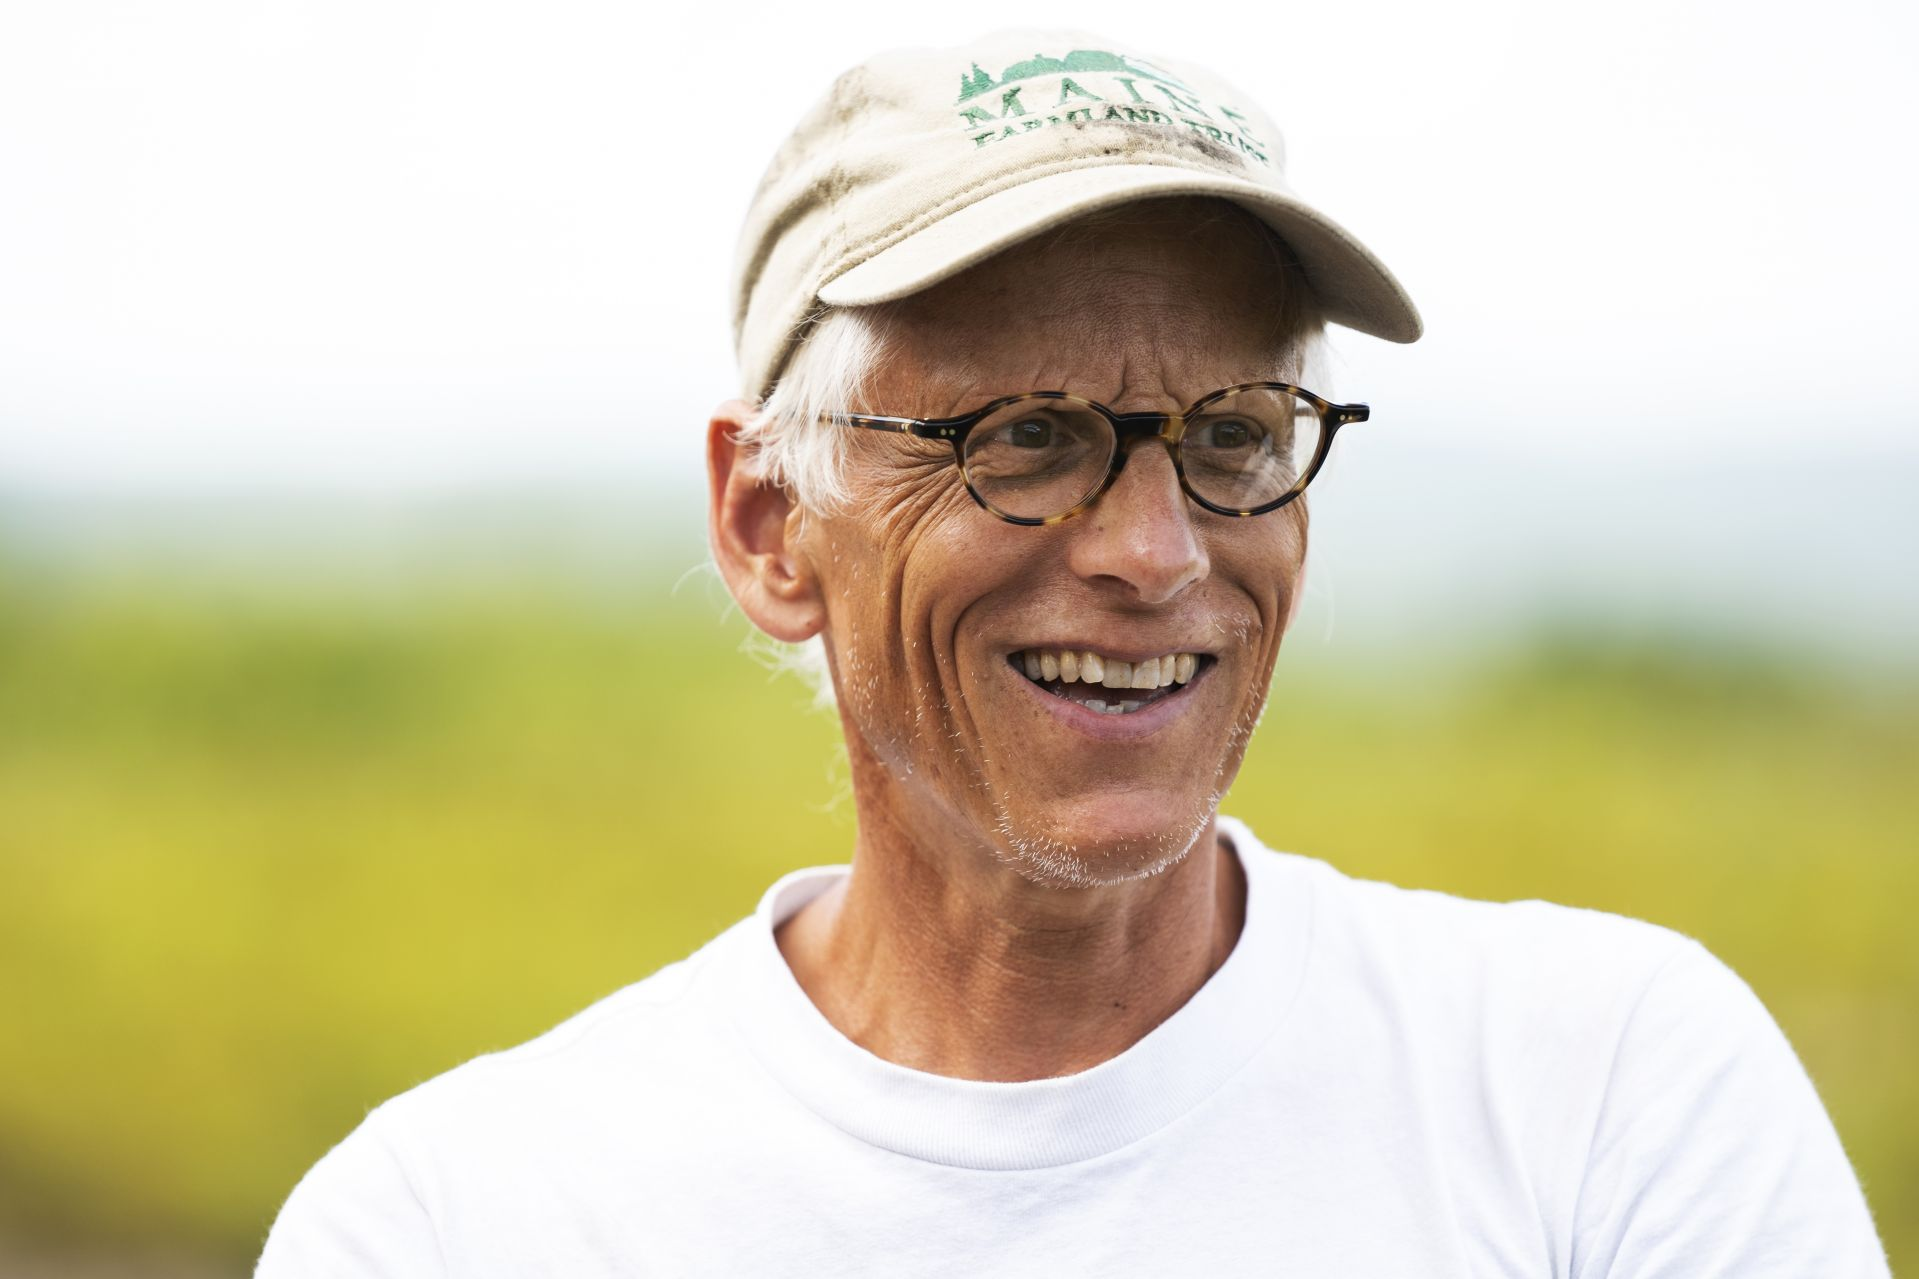 Nick Lindholm Ô86, Organic blueberry farmer at Blue Hill Berry Co., run by Nicolas and wife Ruth Fiske, centered in the heart of the Blue Hill peninsula, settled in 1996, works on his farm on August 1, 2019.